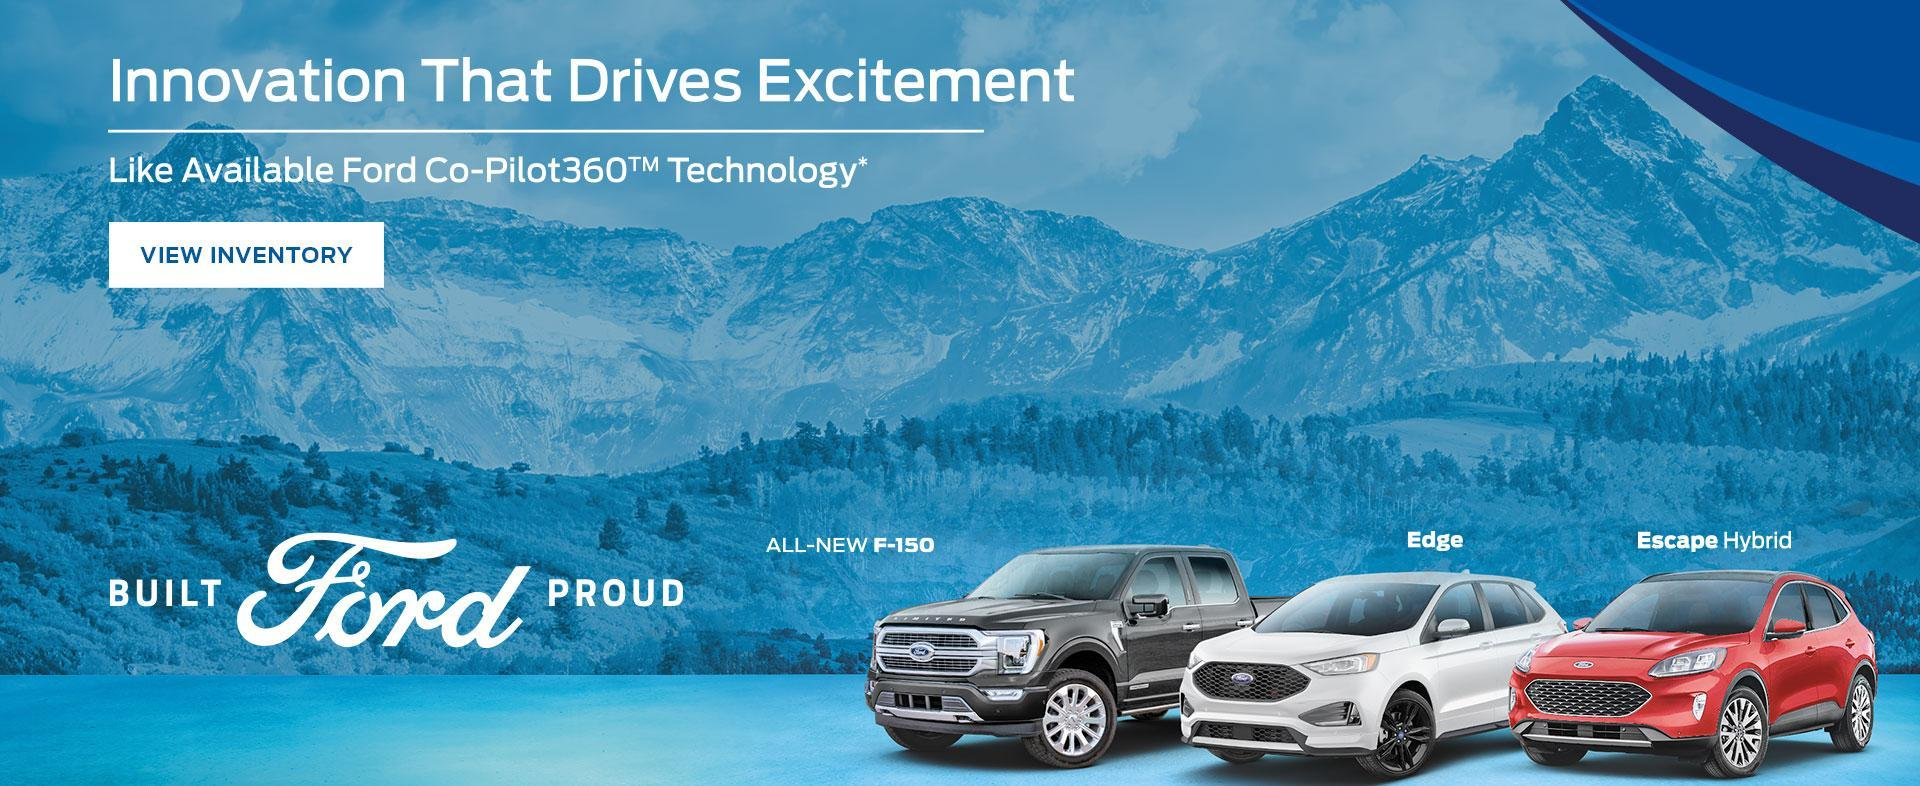 Ford Co-Pilot 360 Technology | Ford of Canada